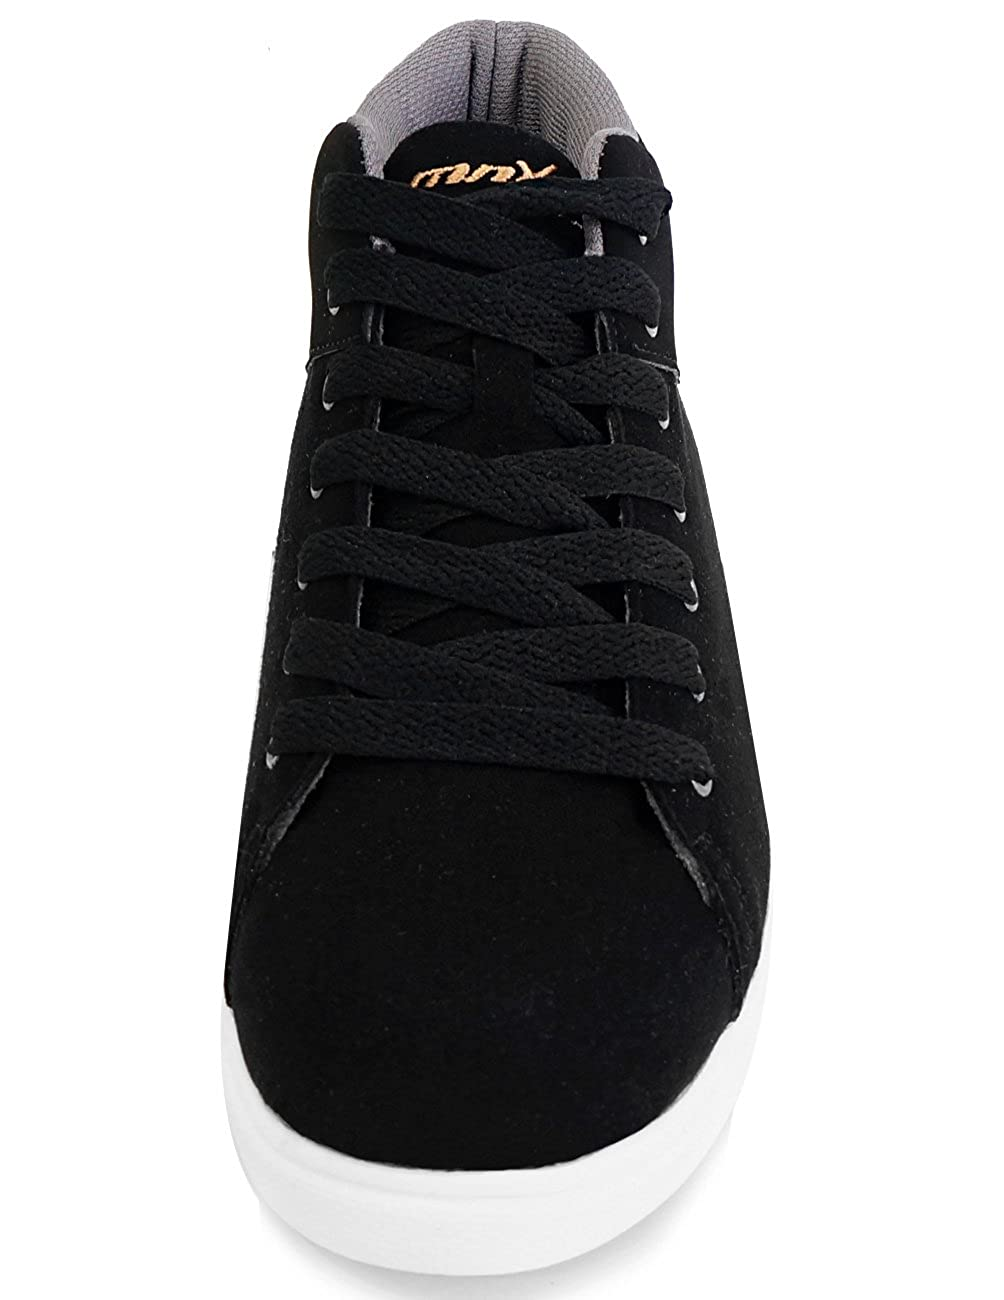 MNX15 Womens Elevator Shoes Height Increase 2.7 Patrick Black